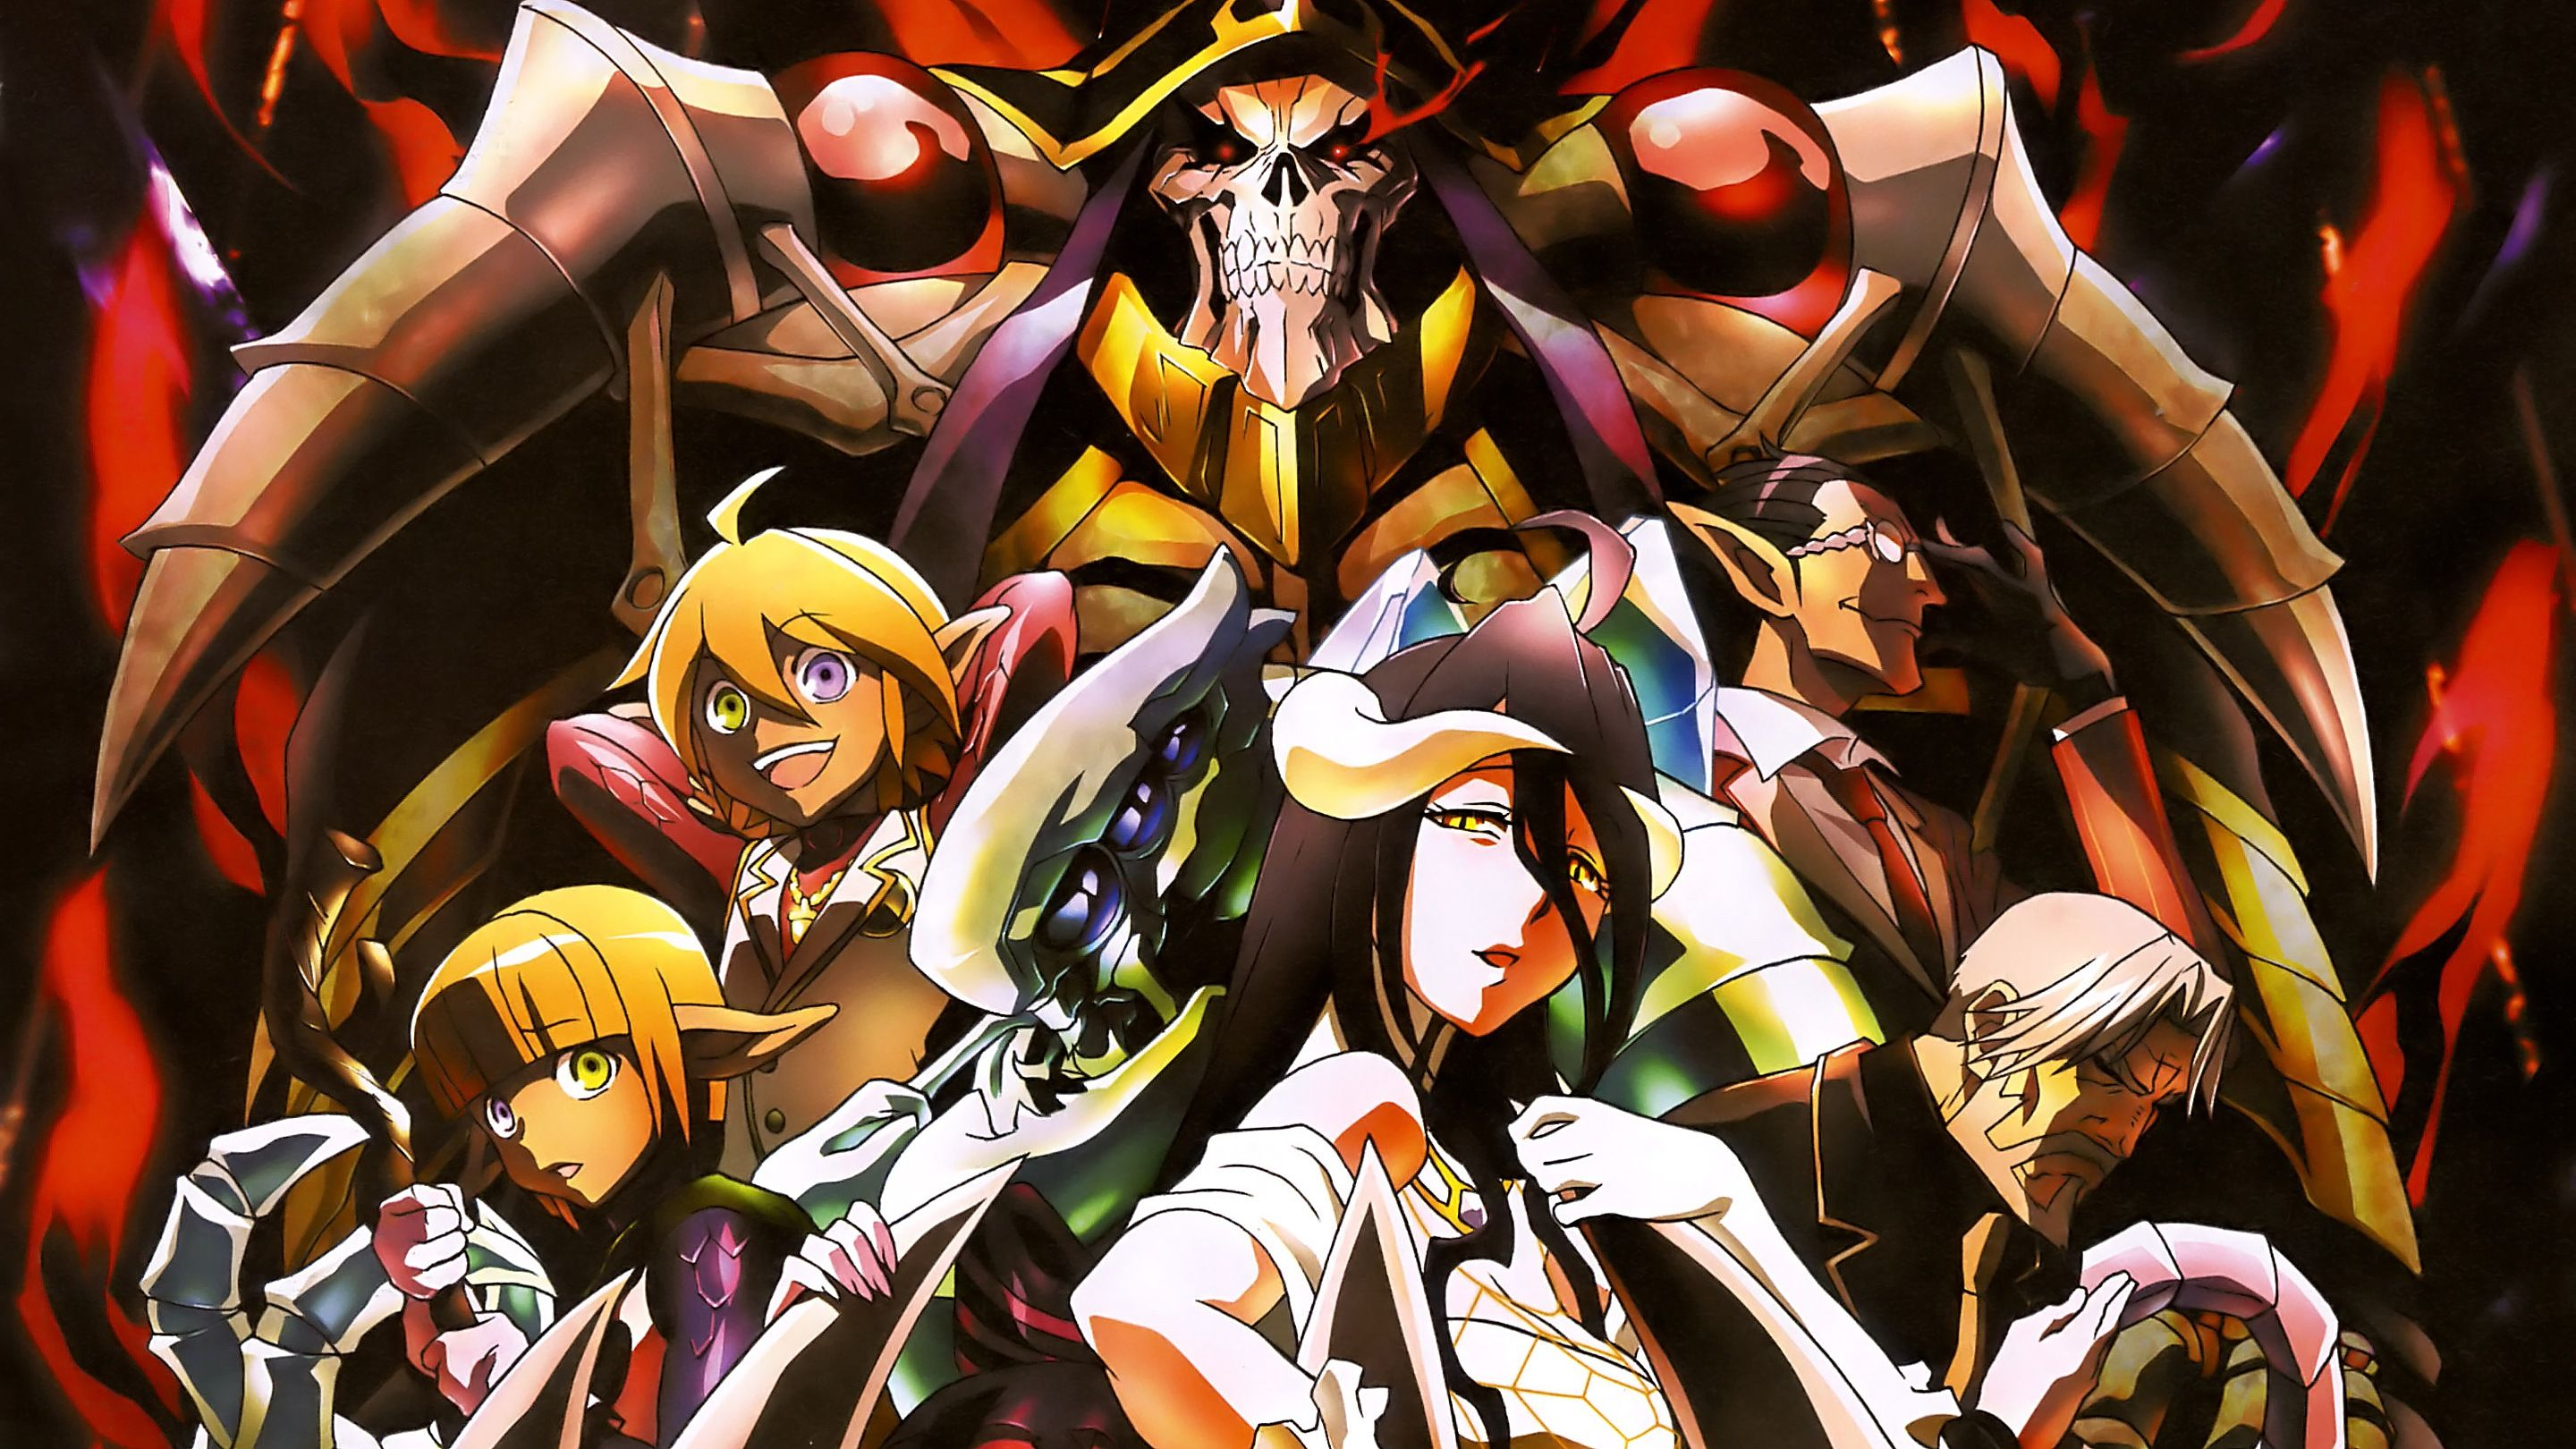 Overlord Anime Ainz Ooal Gown Wallpaper HD 2880x1620 Anime